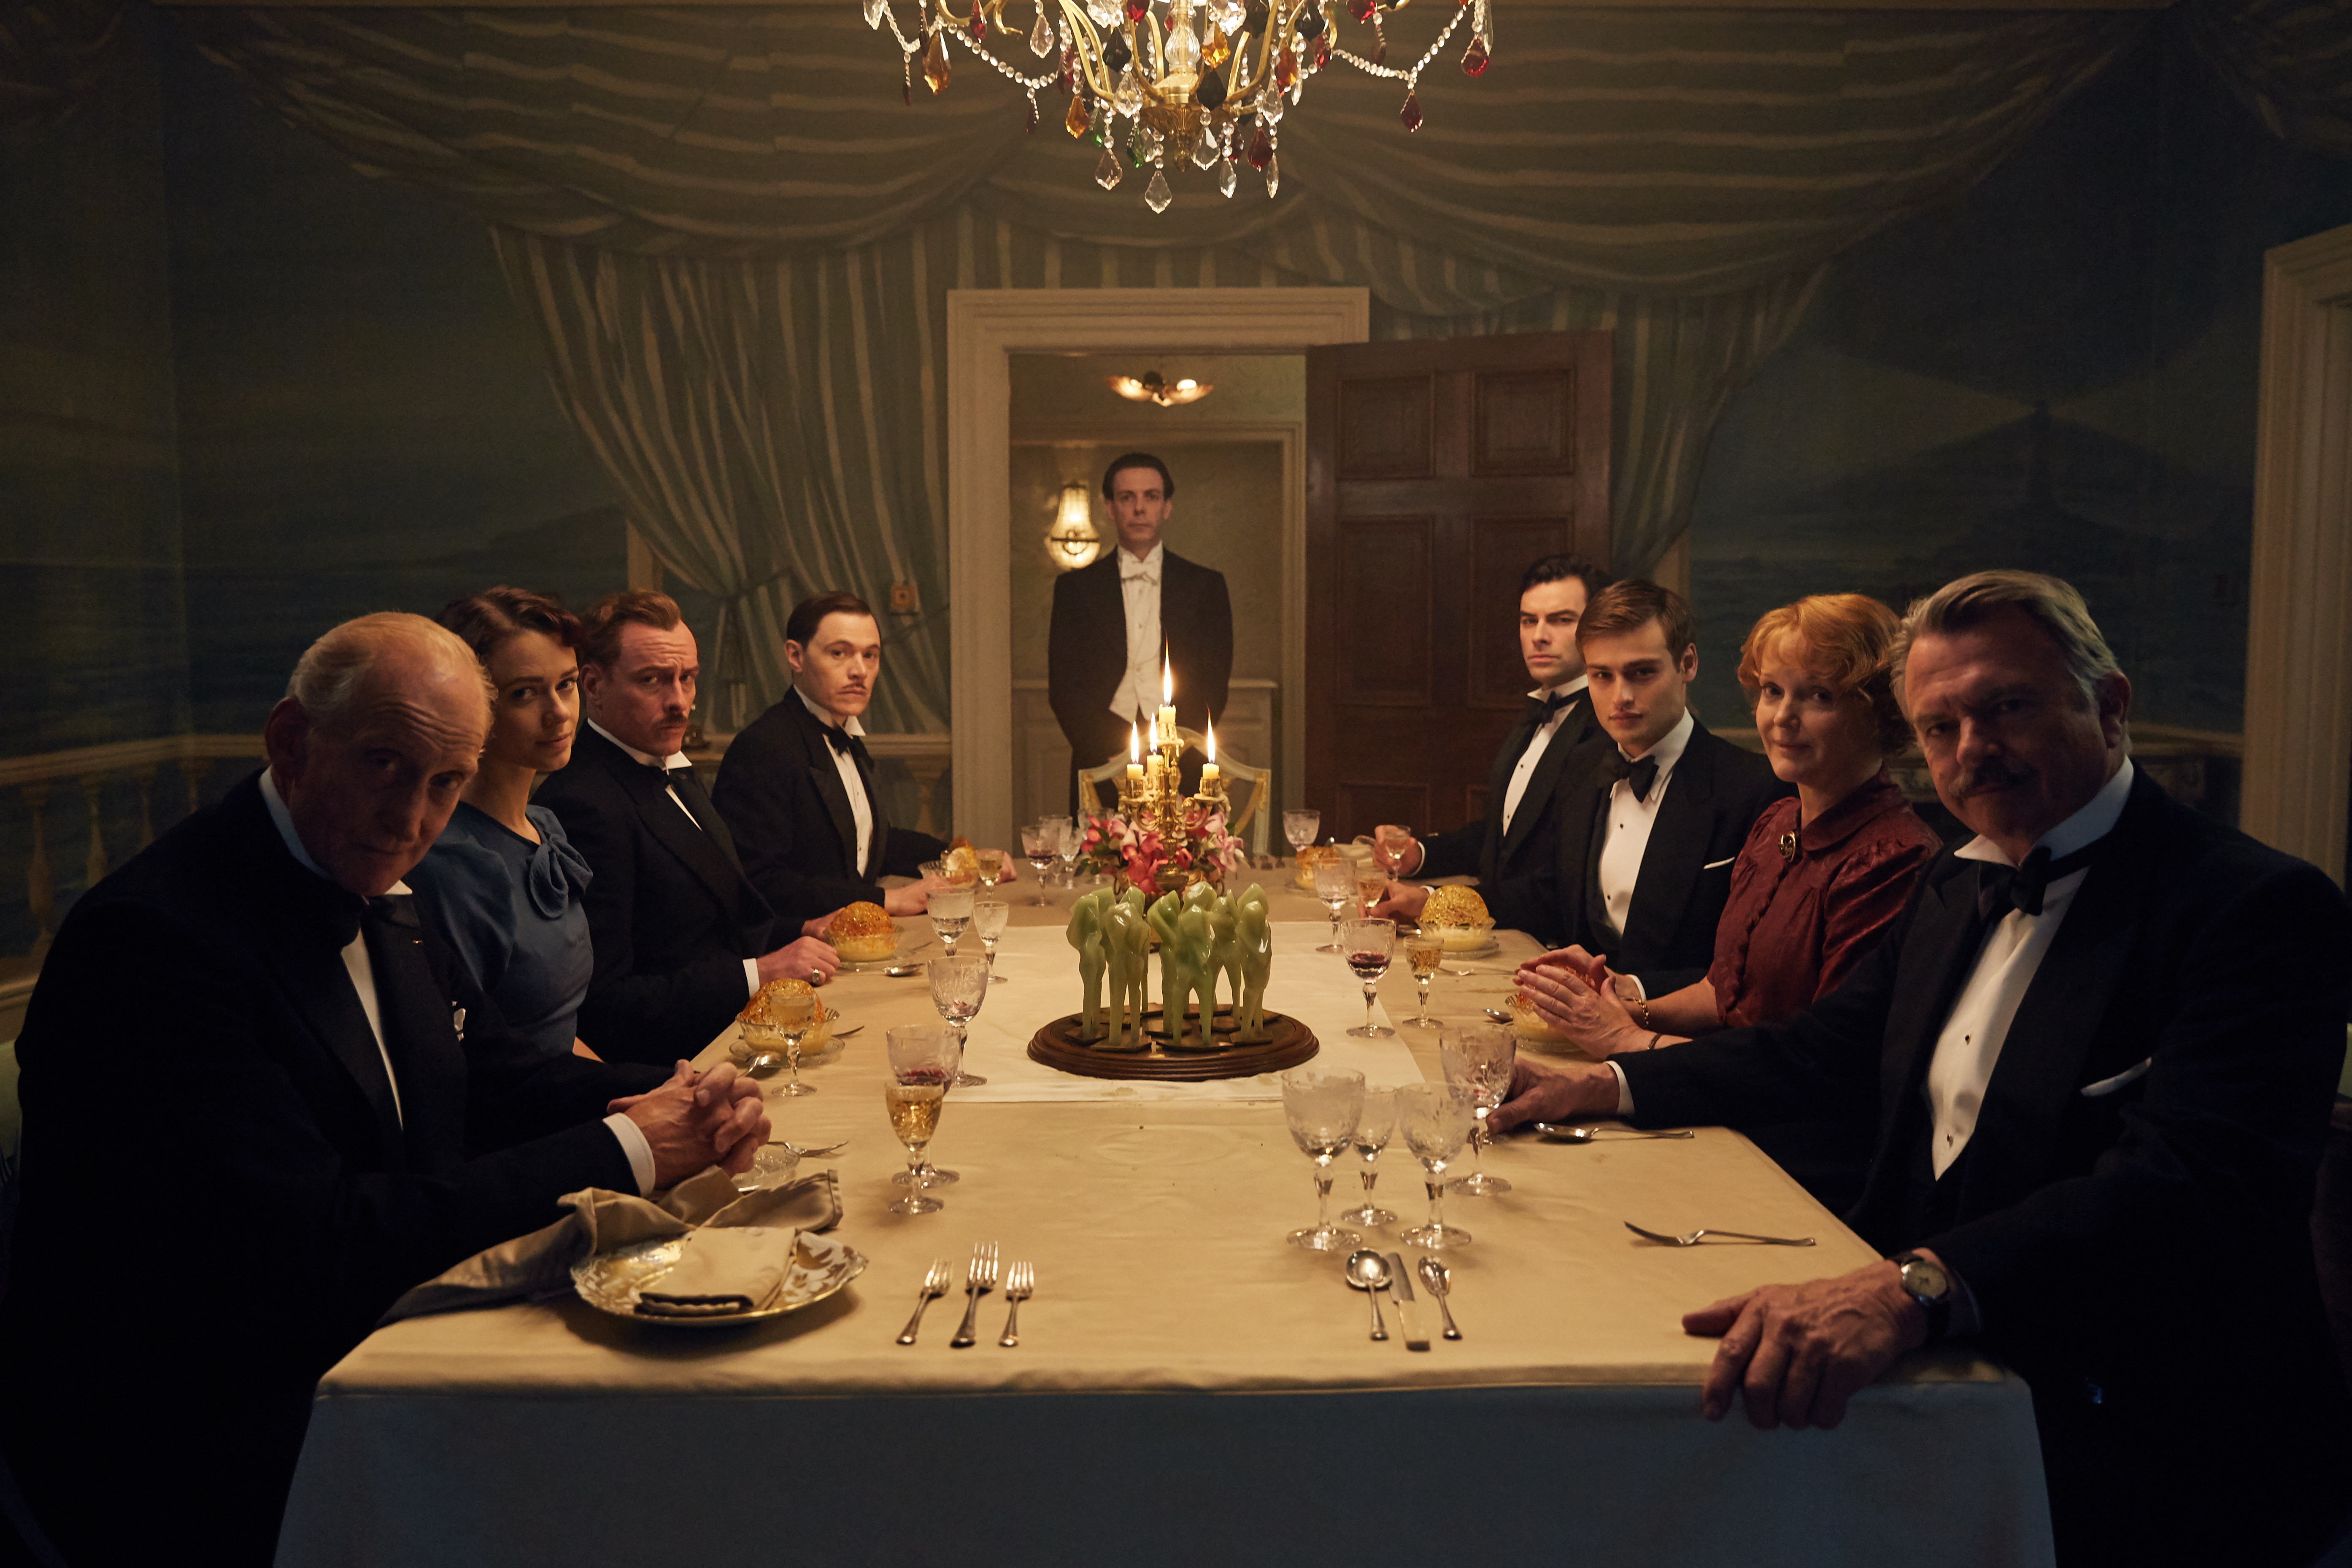 The Cast Of And Then There Were None Seated Around A Formal Dinner Table At